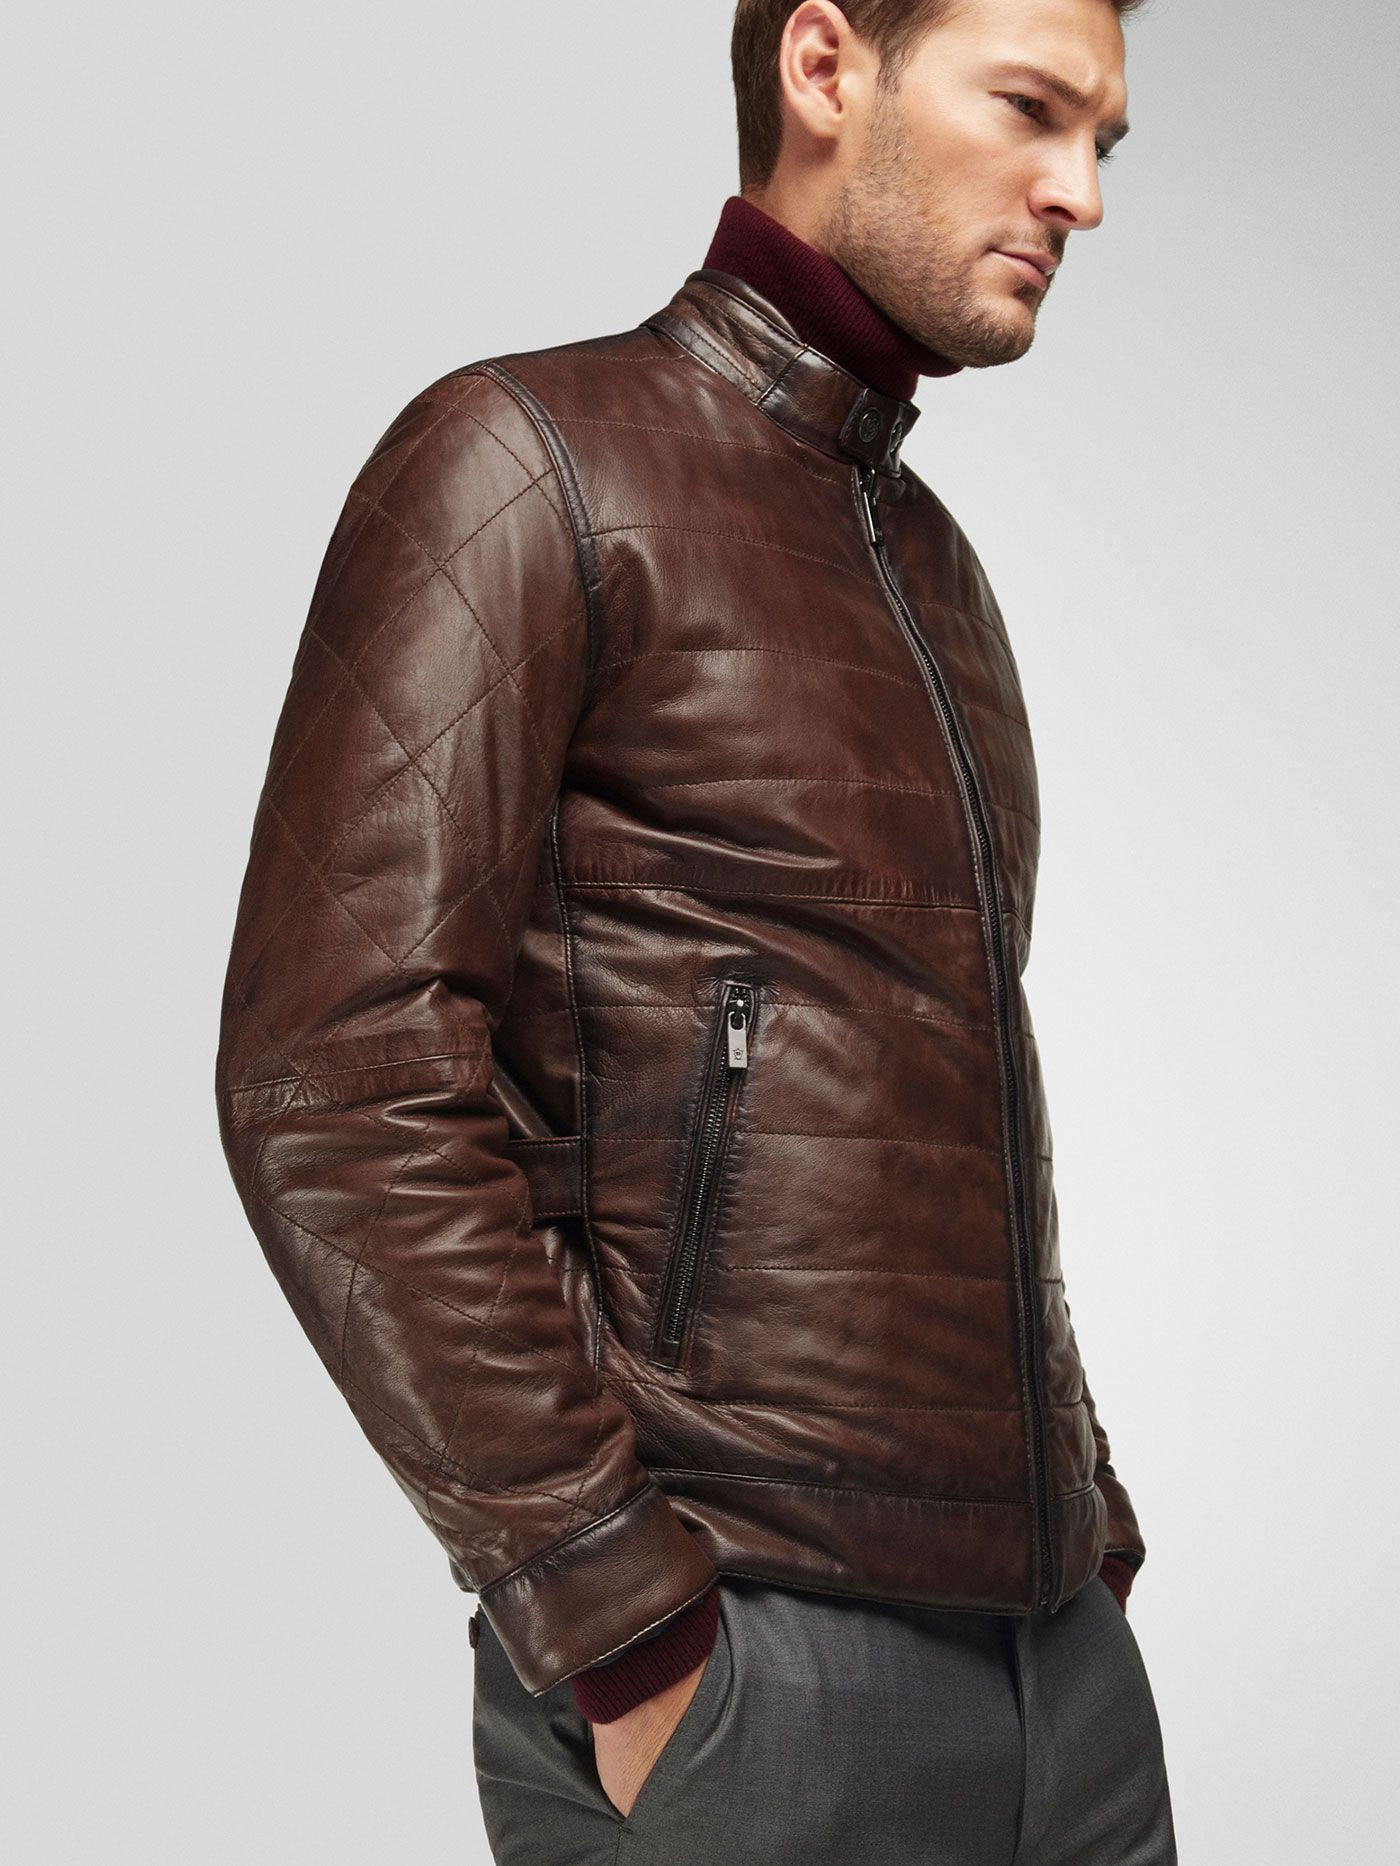 Brown Nappa Reversible Jacket With Navy Blue Interior Massimo Dutti Black Leather Motorcycle Jacket Jackets Leather Wear [ 1866 x 1400 Pixel ]